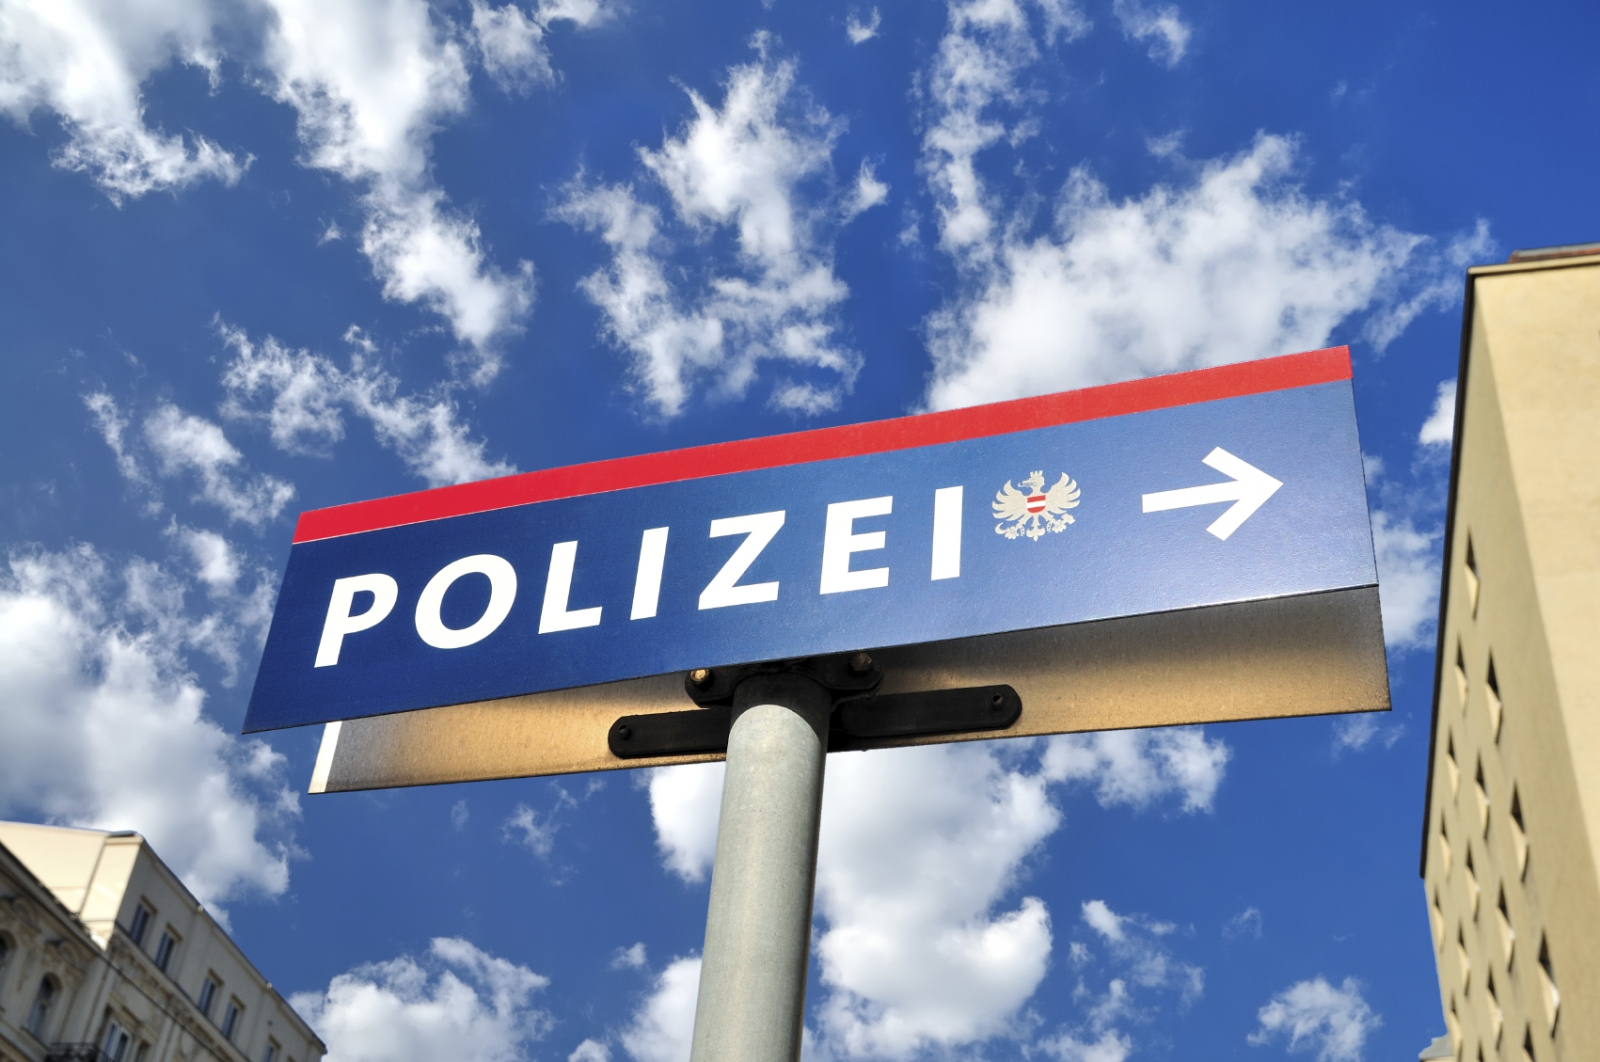 Austria police polizei sign